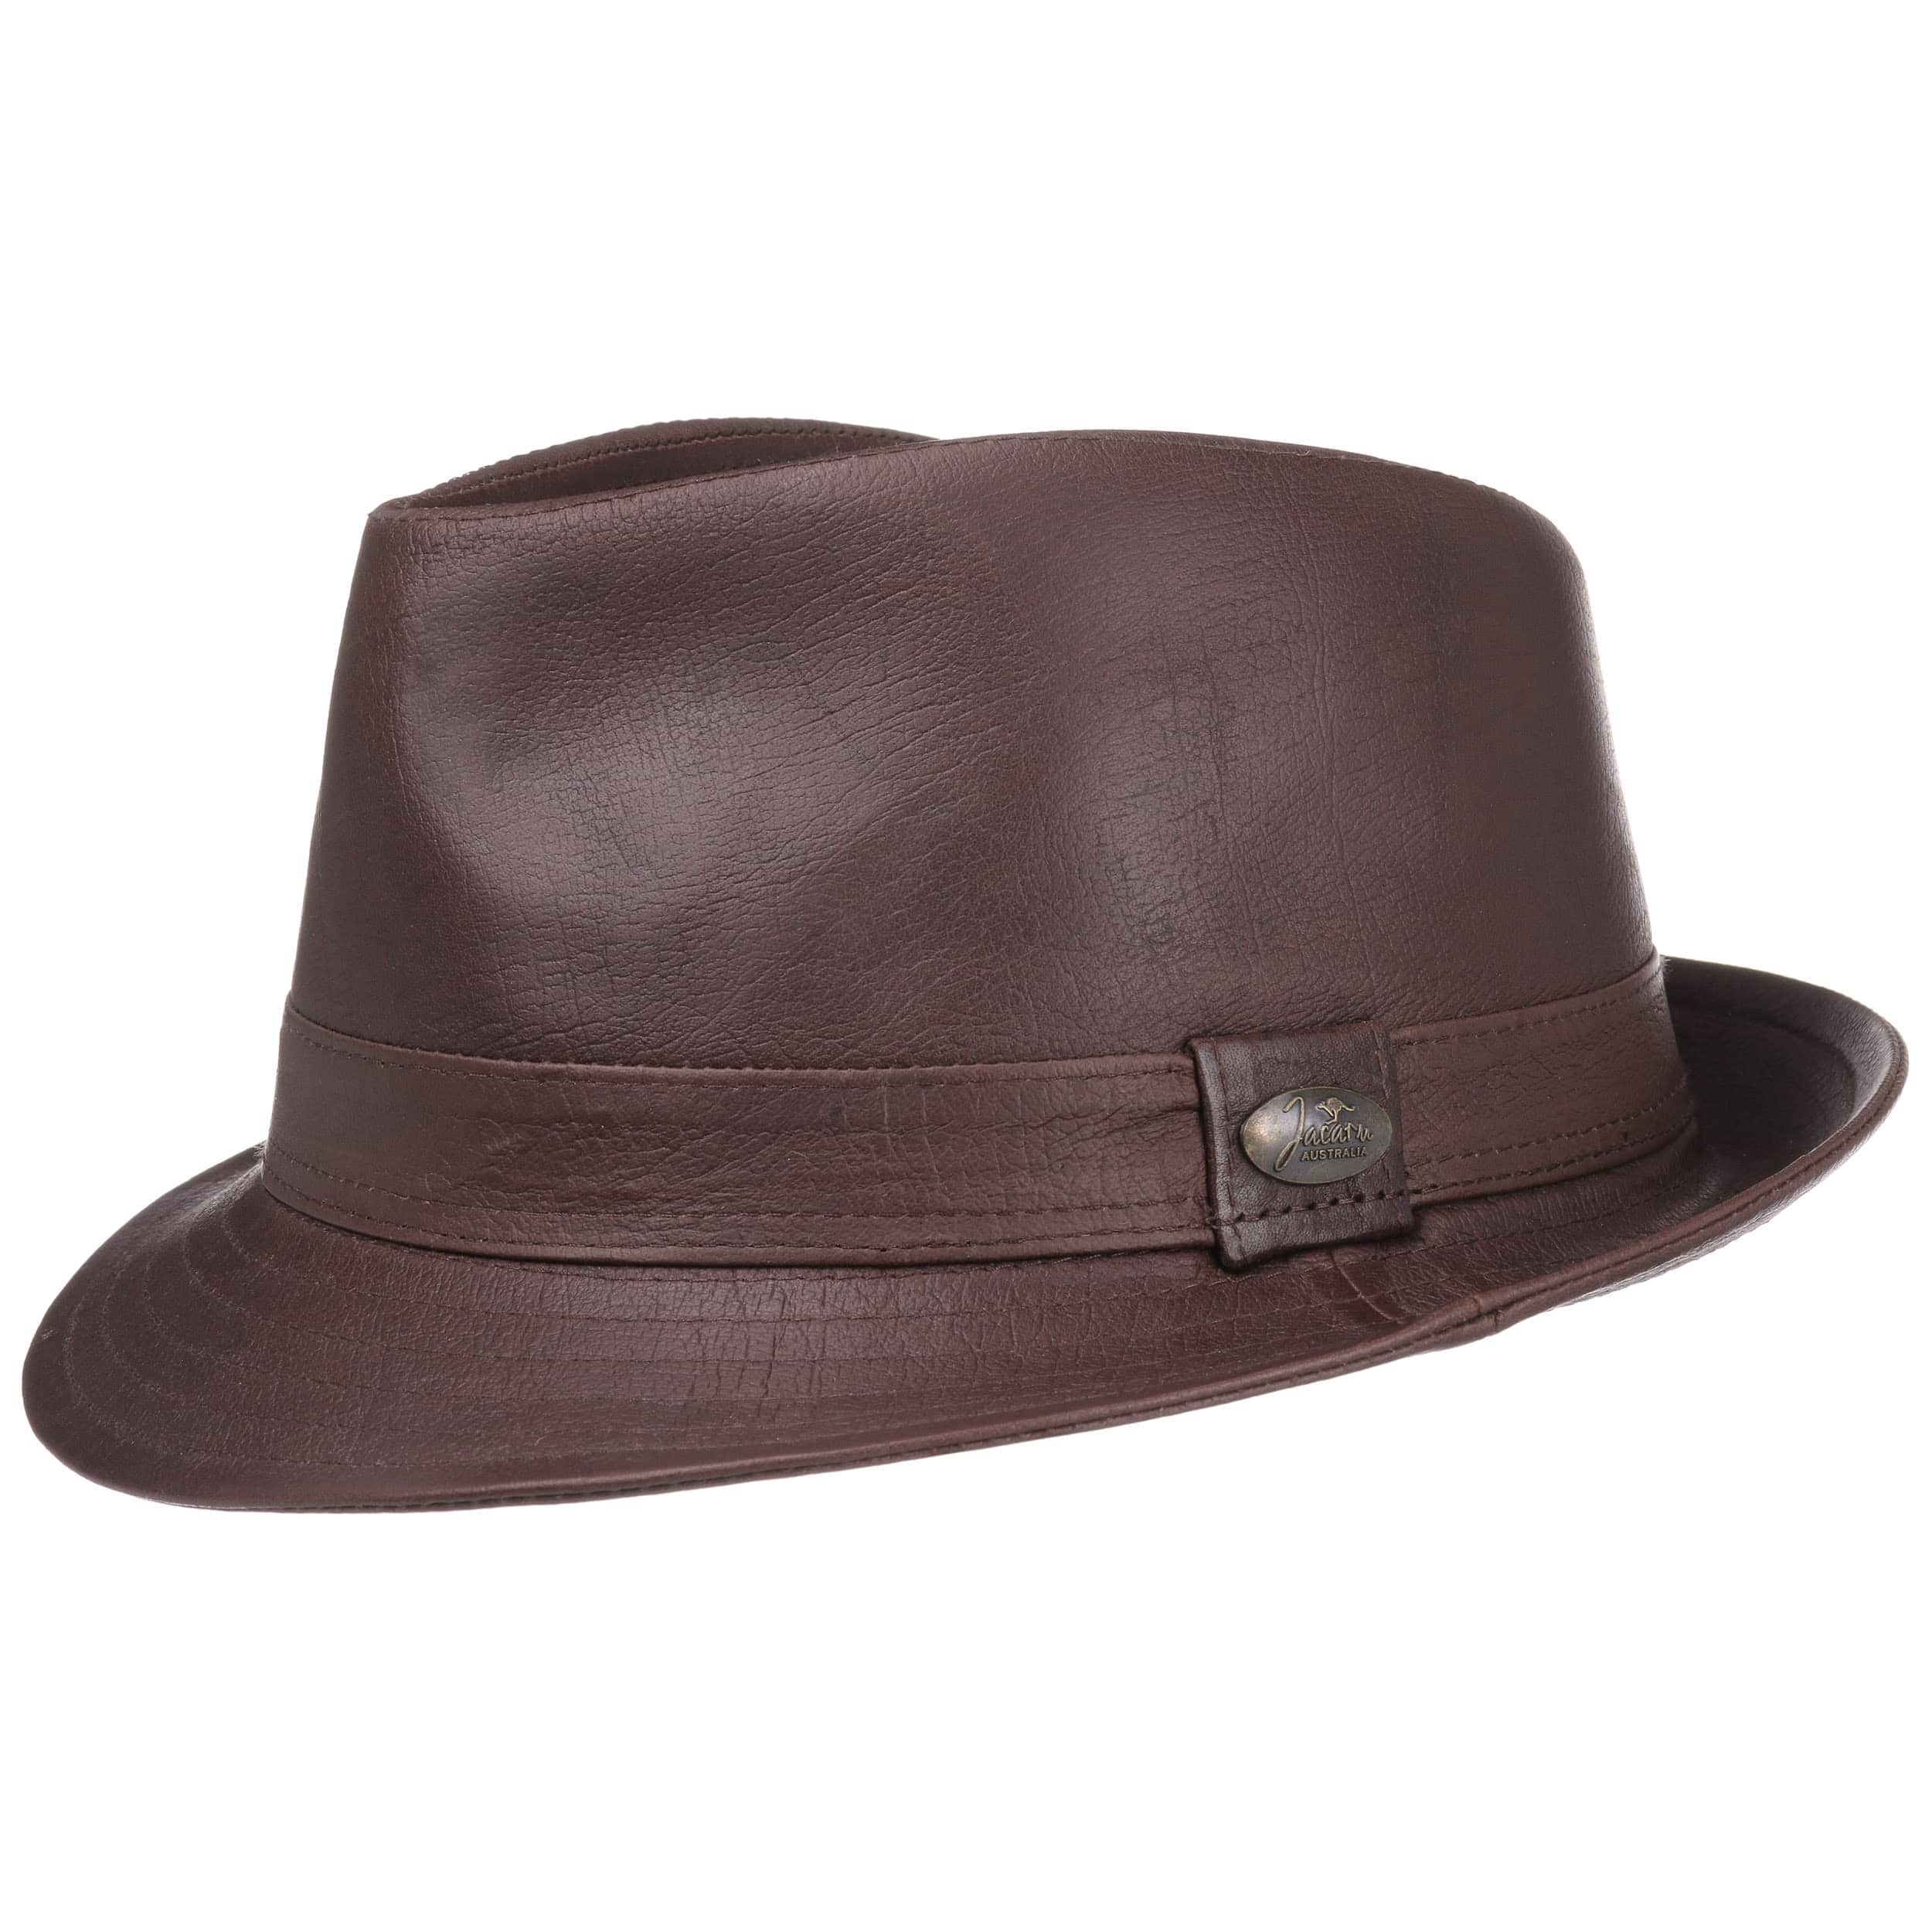 50b0a056634 ... Roo Trilby Leather Hat by Jacaru - brown 5 ...